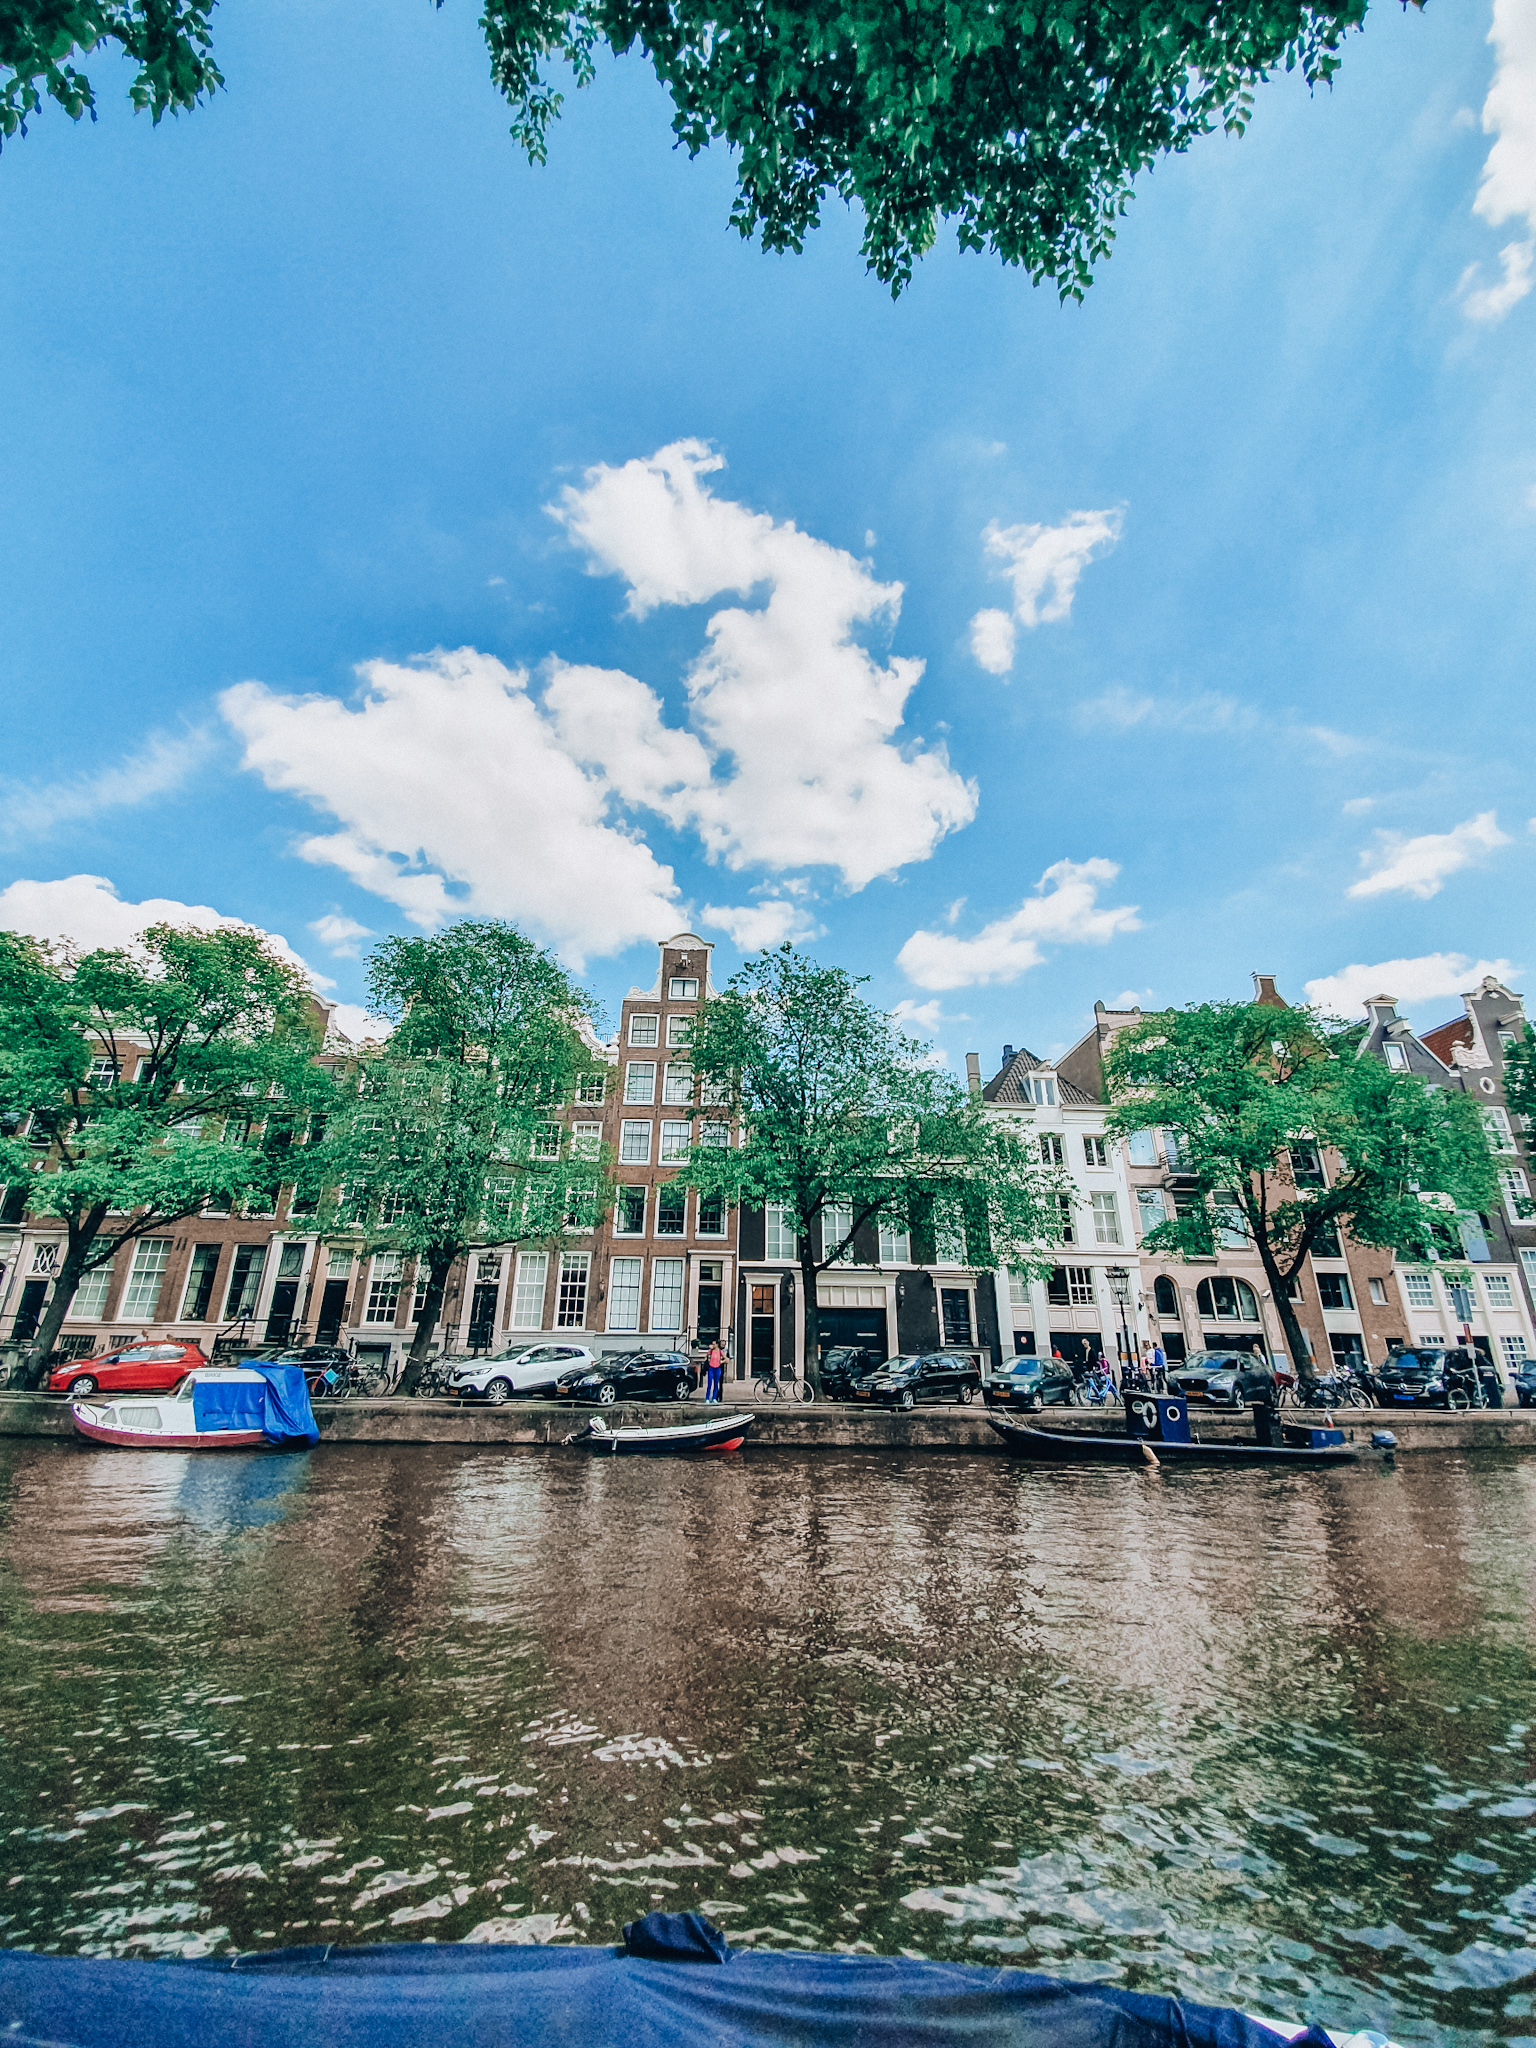 Houses of Amsterdam with blue sky